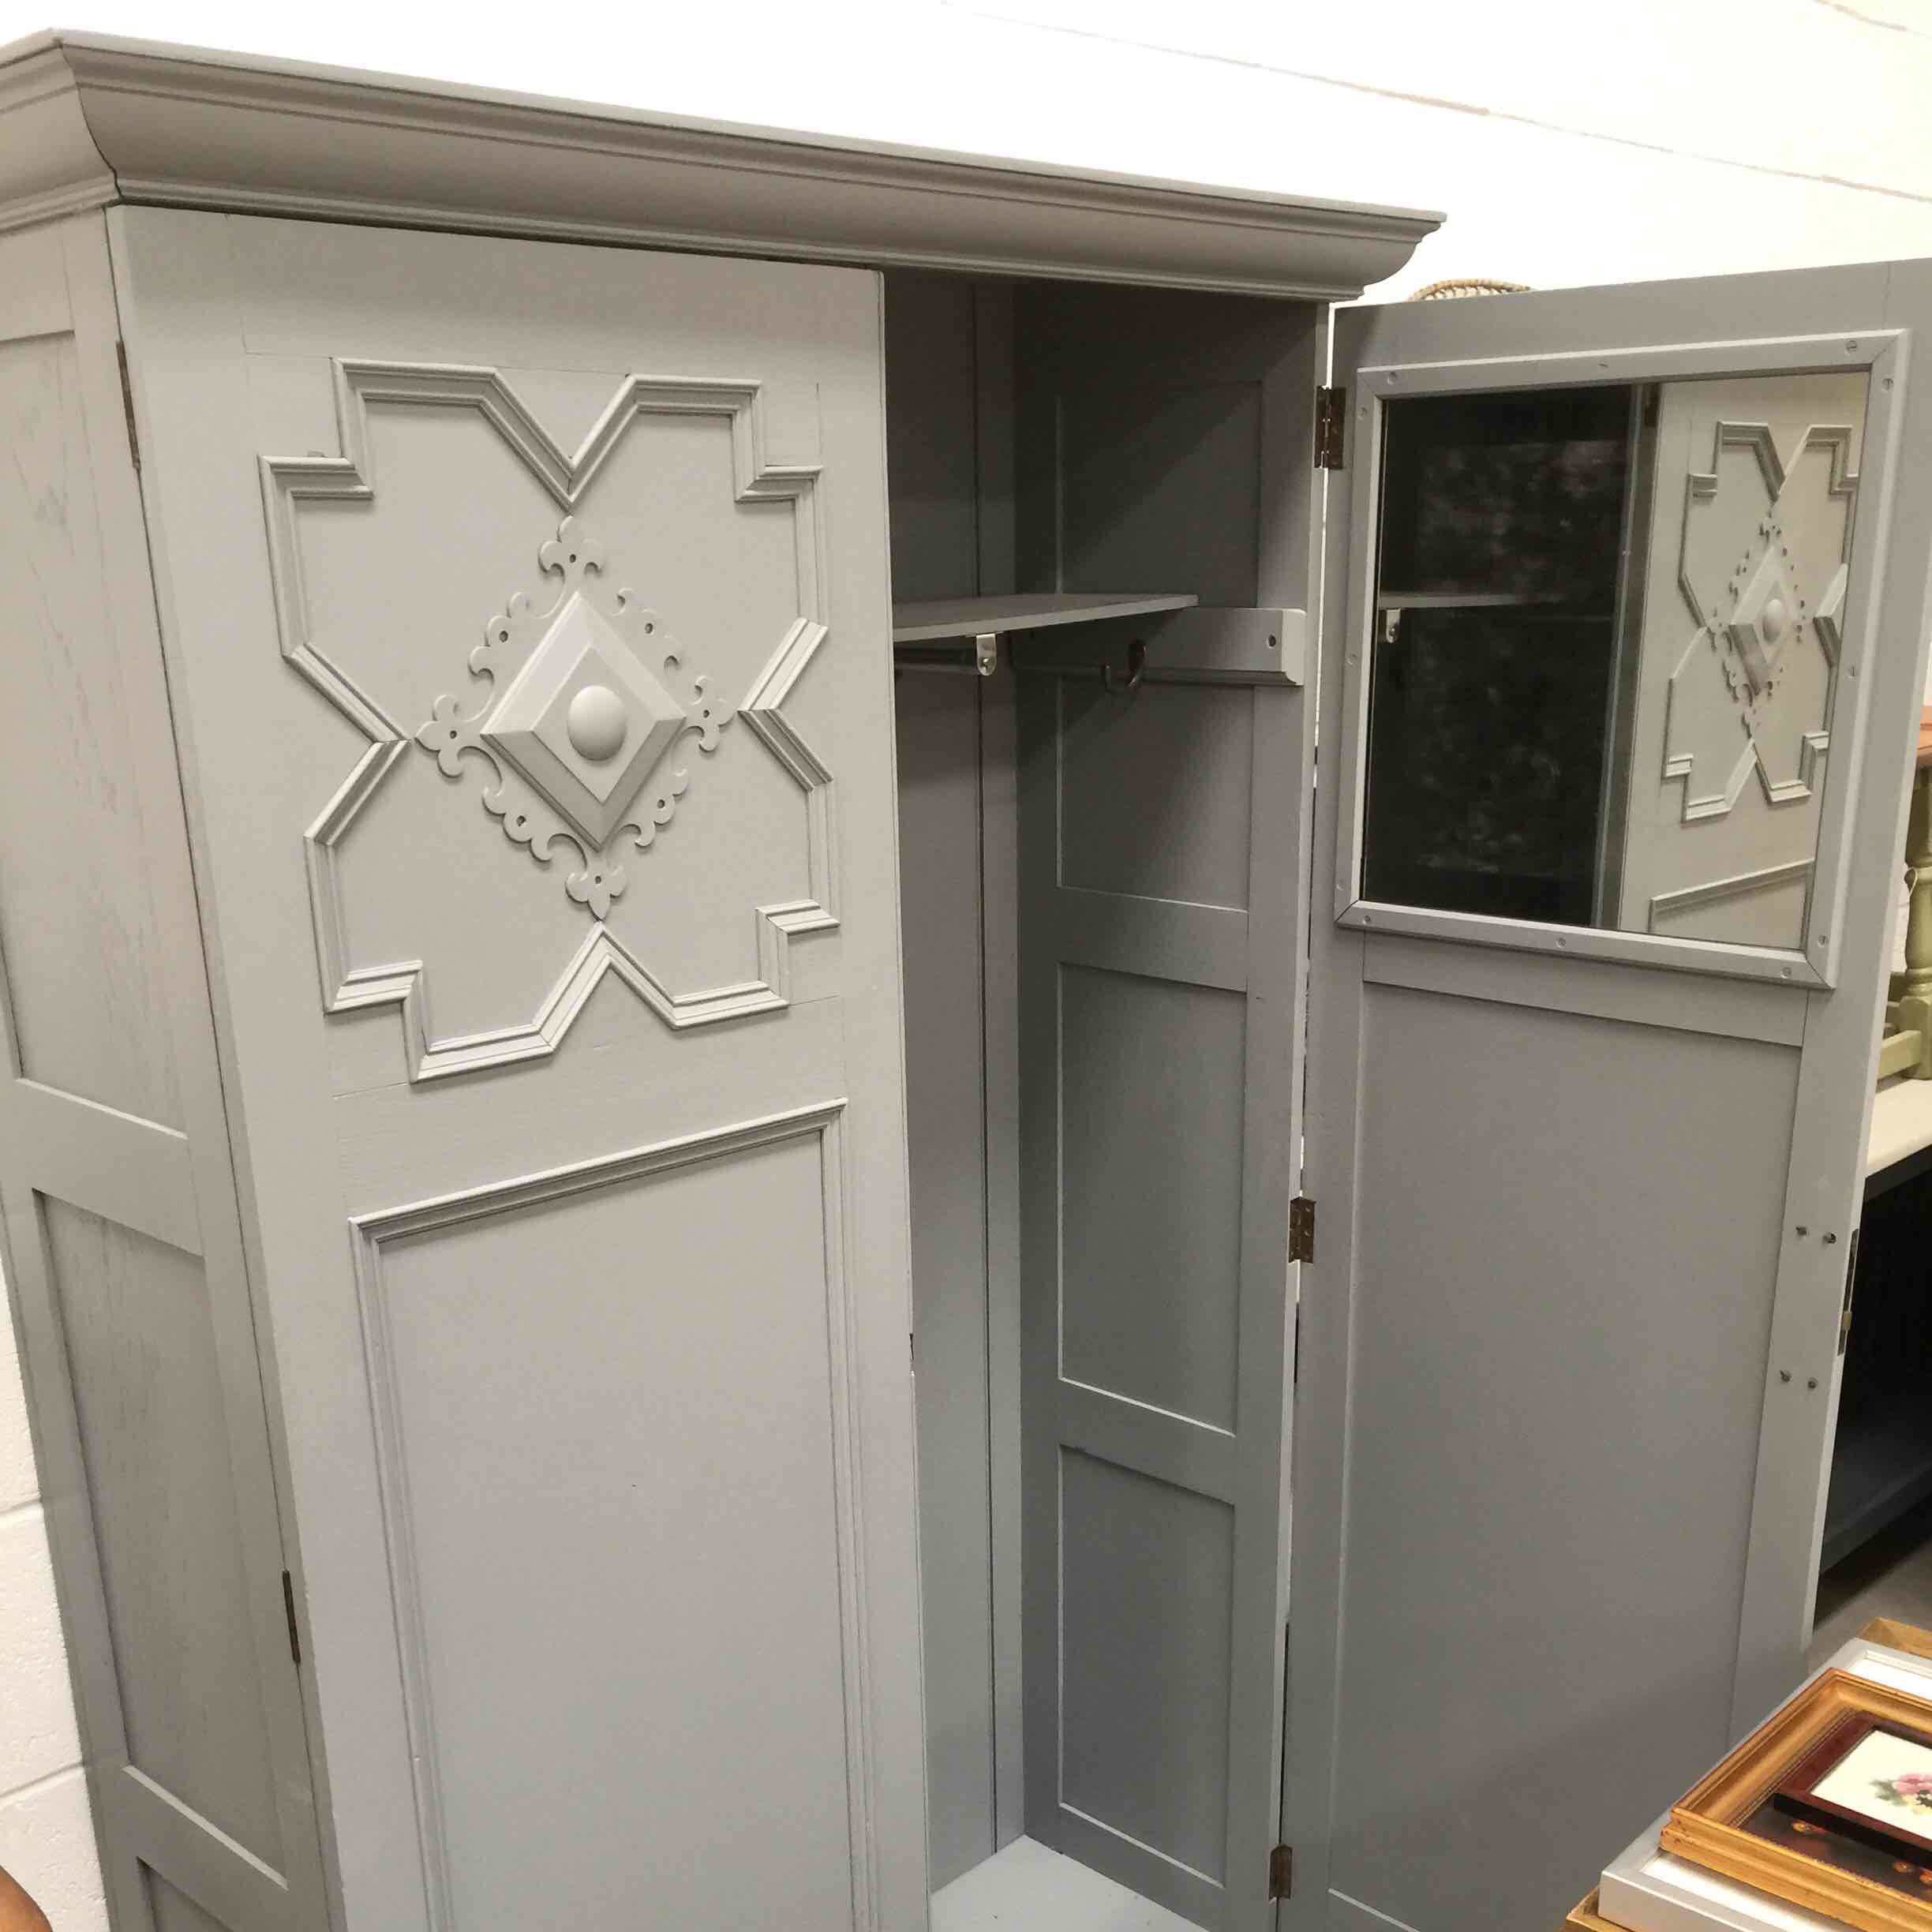 armoire wardrobe shipping overstock garden free burnt gracewood home black today drawer product aristo dark grey hollow